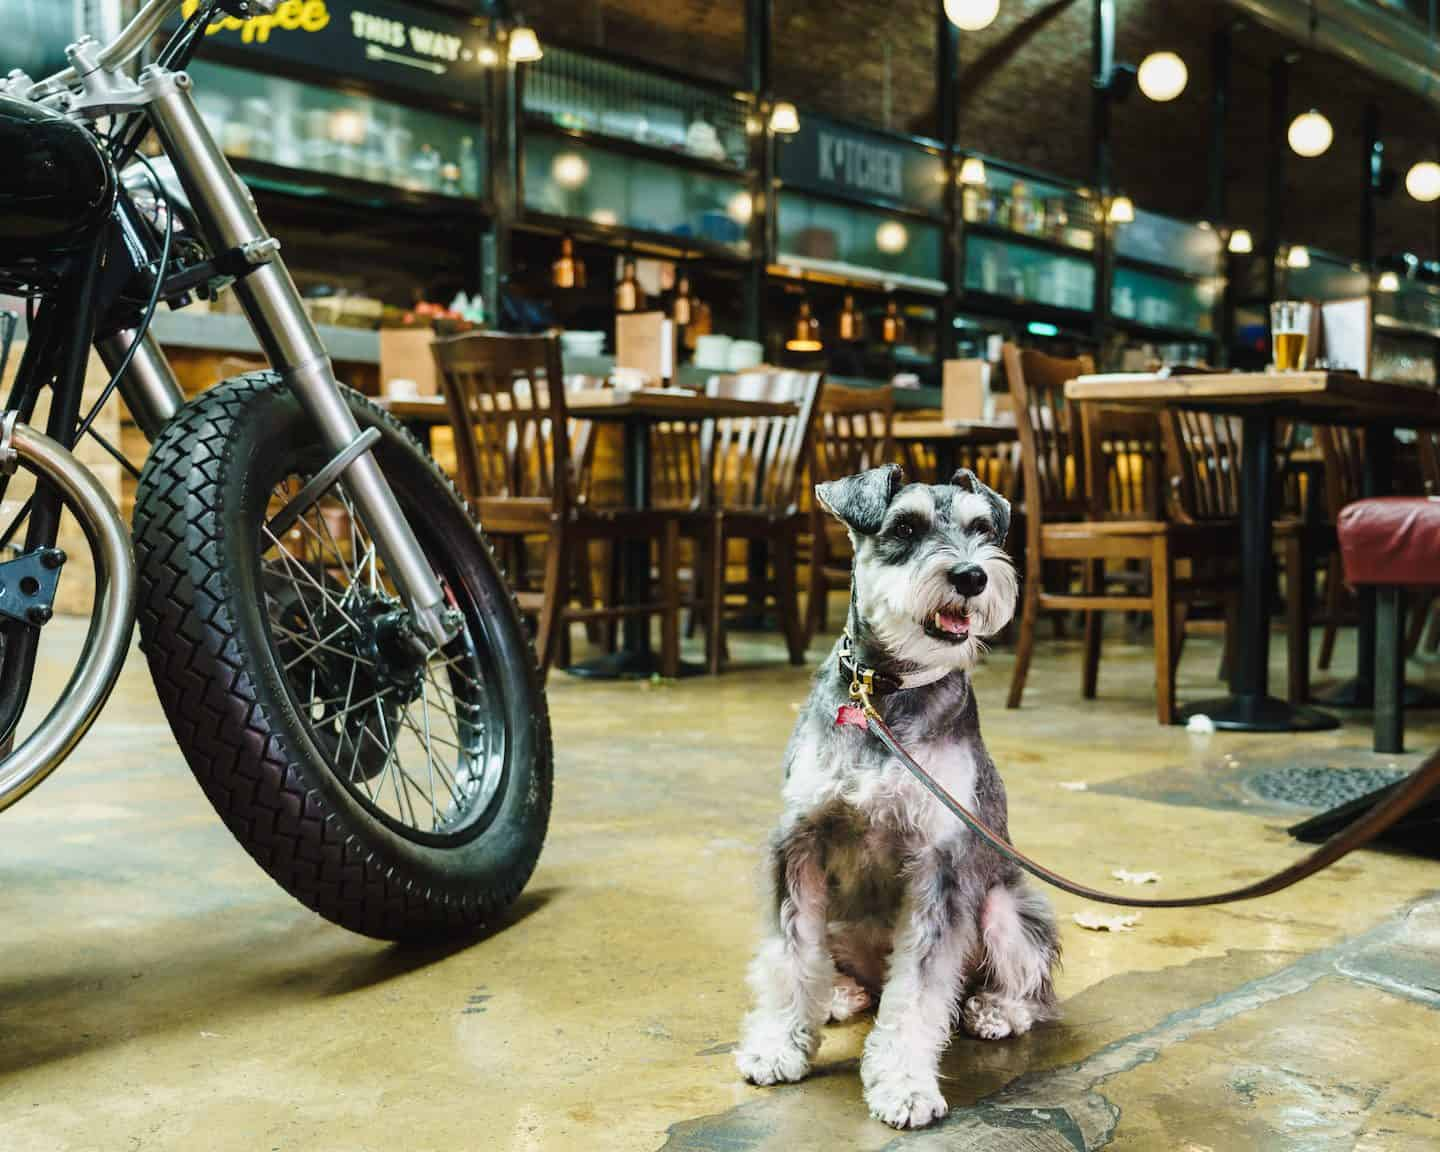 My Dog Friendly London By Rusty Red The Schnauzer | Dog Friendly Shoreditch and Hoxton Bike Shed 3